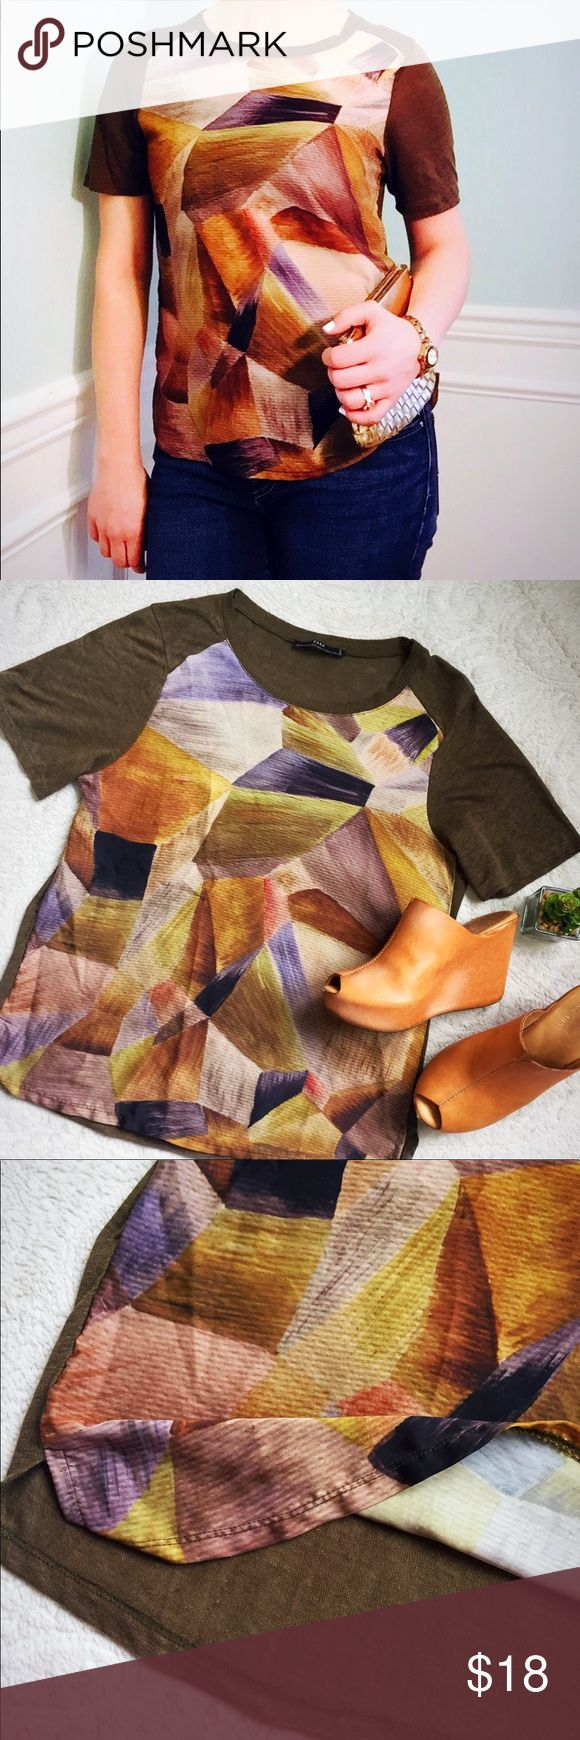 """Zara Abstract Printed Linen Tee Such a gorgeous piece! 😍 The earth tone print on this top is beautiful and pairs well with dark denim or is easily dressed up with a fun pencil skirt. Items front panel is a soft silk like material and sleeves and back panel are a soft greenish brown Linen. Item is very slightly sheer so a cami may need to be worn depending on your style. Length: 25"""" Zara Tops"""